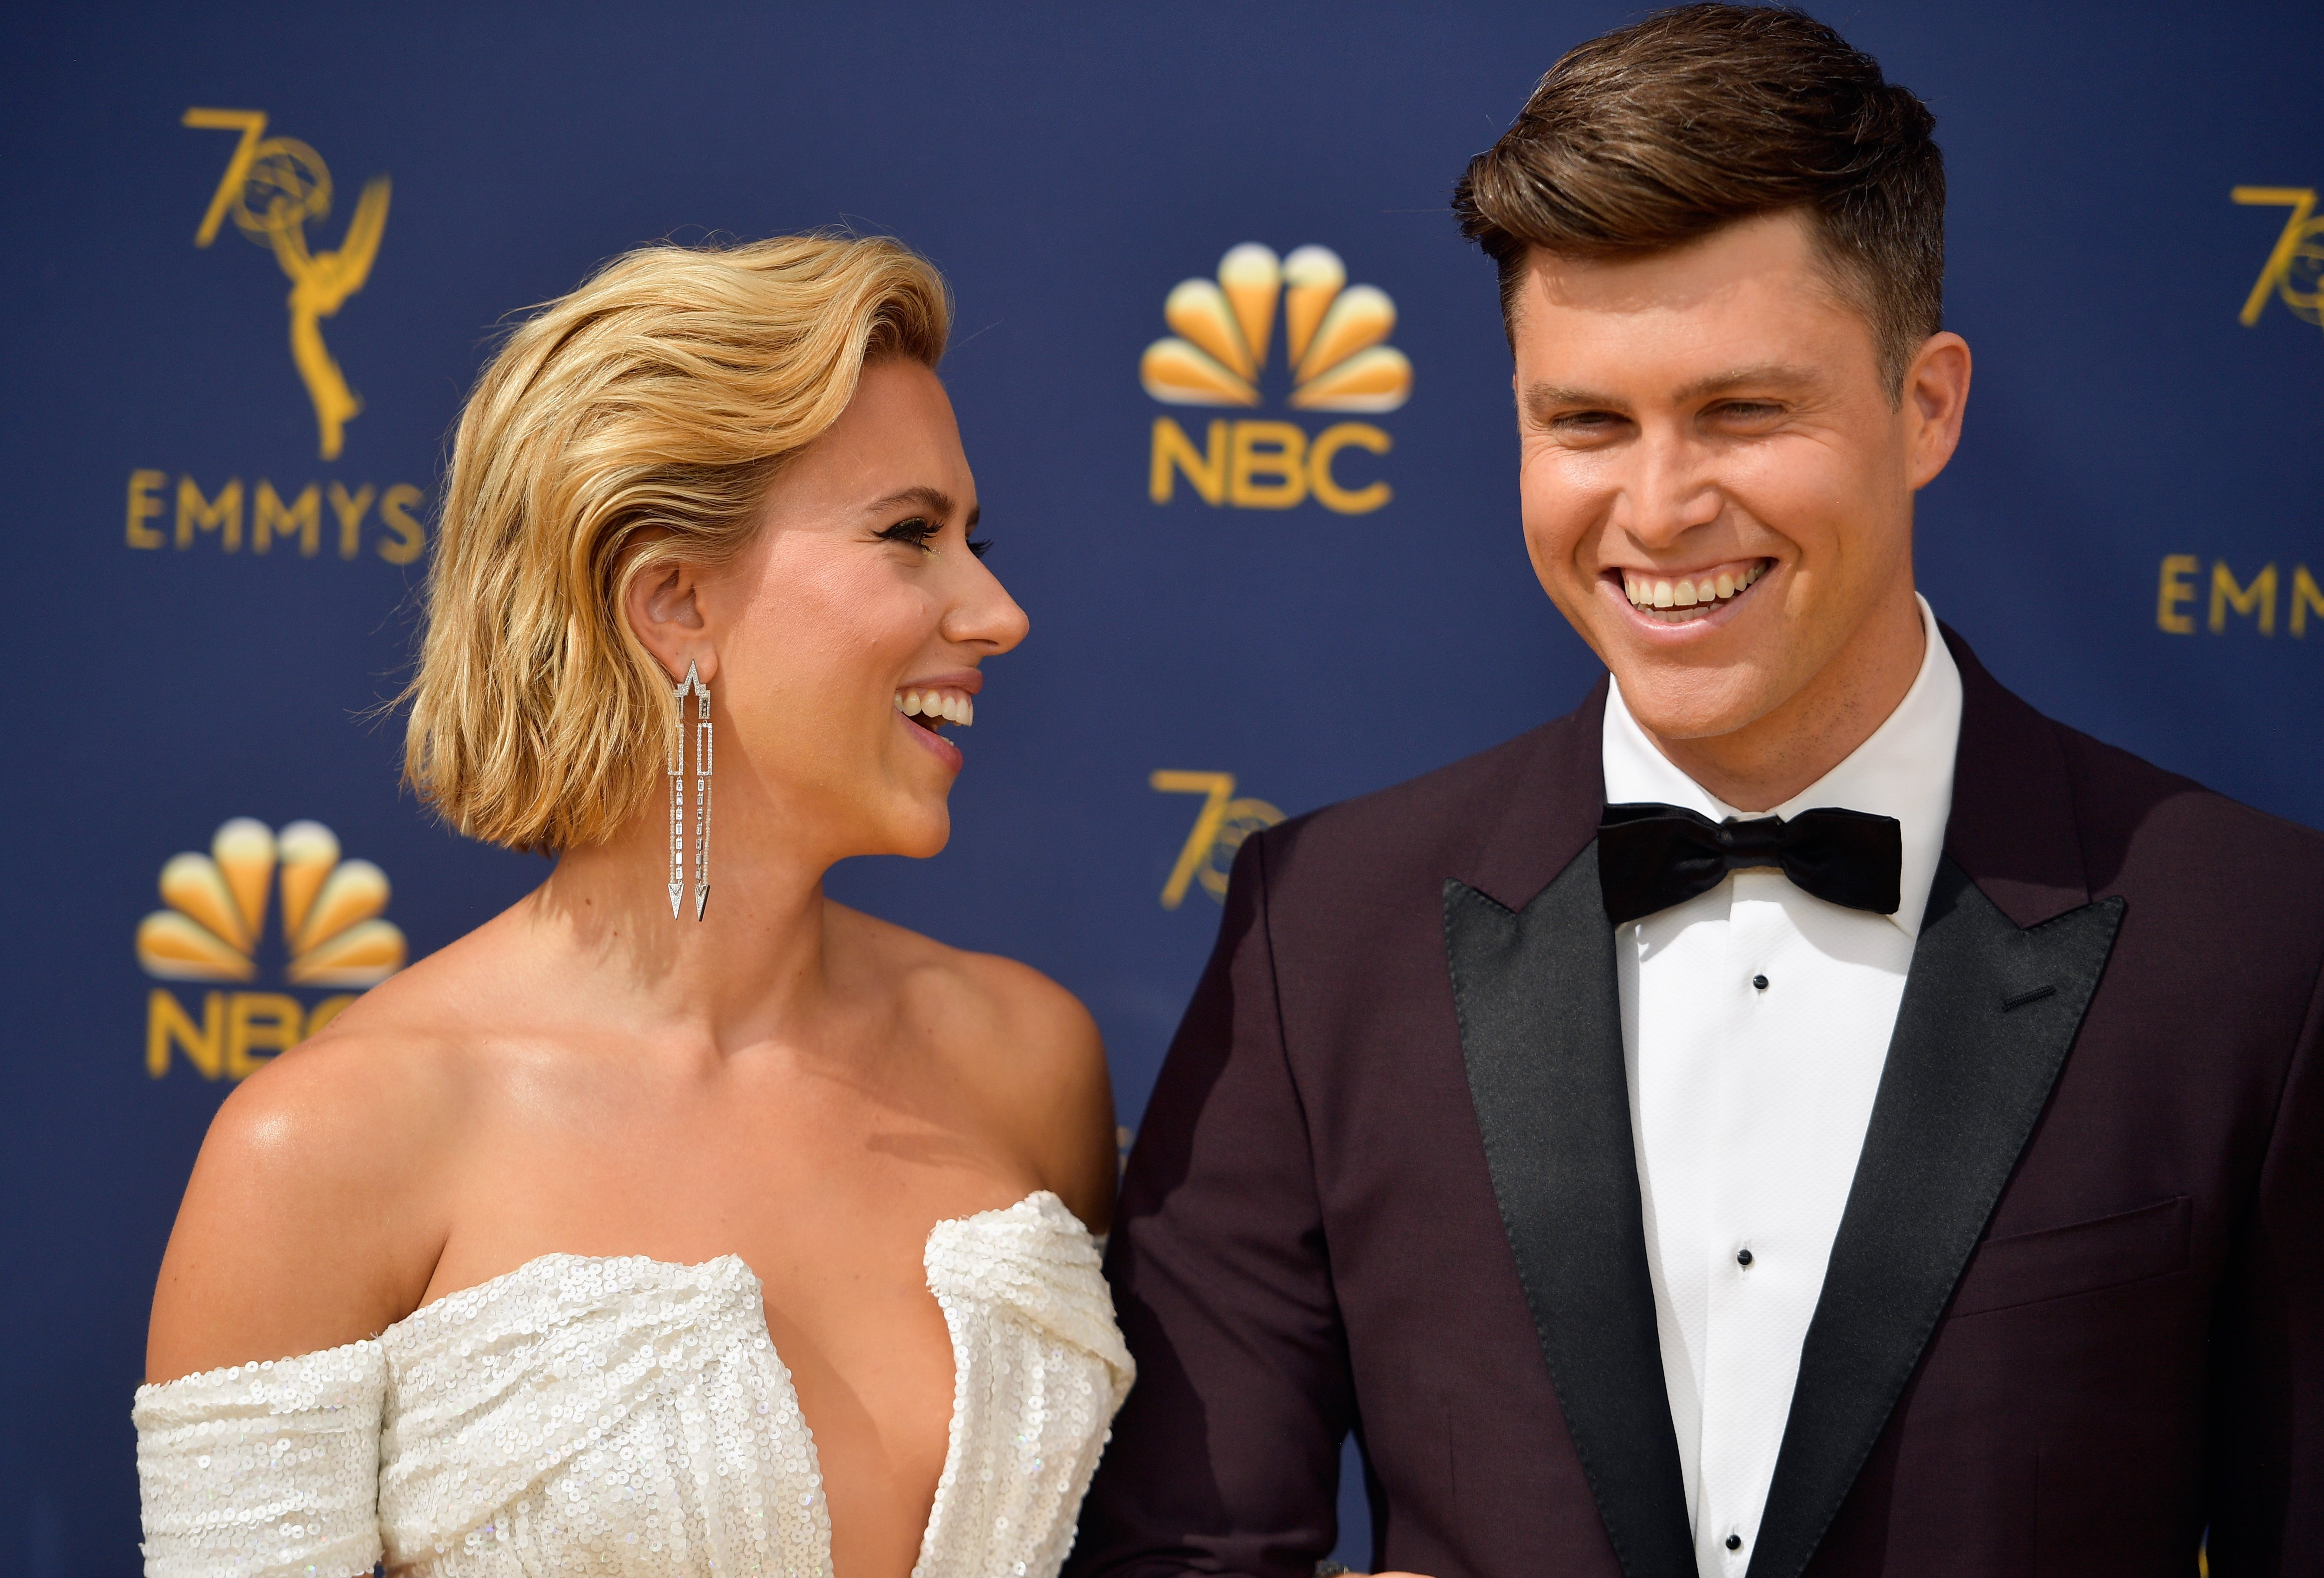 Actress Scarlett Johansson and Colin Jost attend the 70th Emmy Awards at Microsoft Theater on September 17, 2018 in Los Angeles, California | Photo: Getty Images